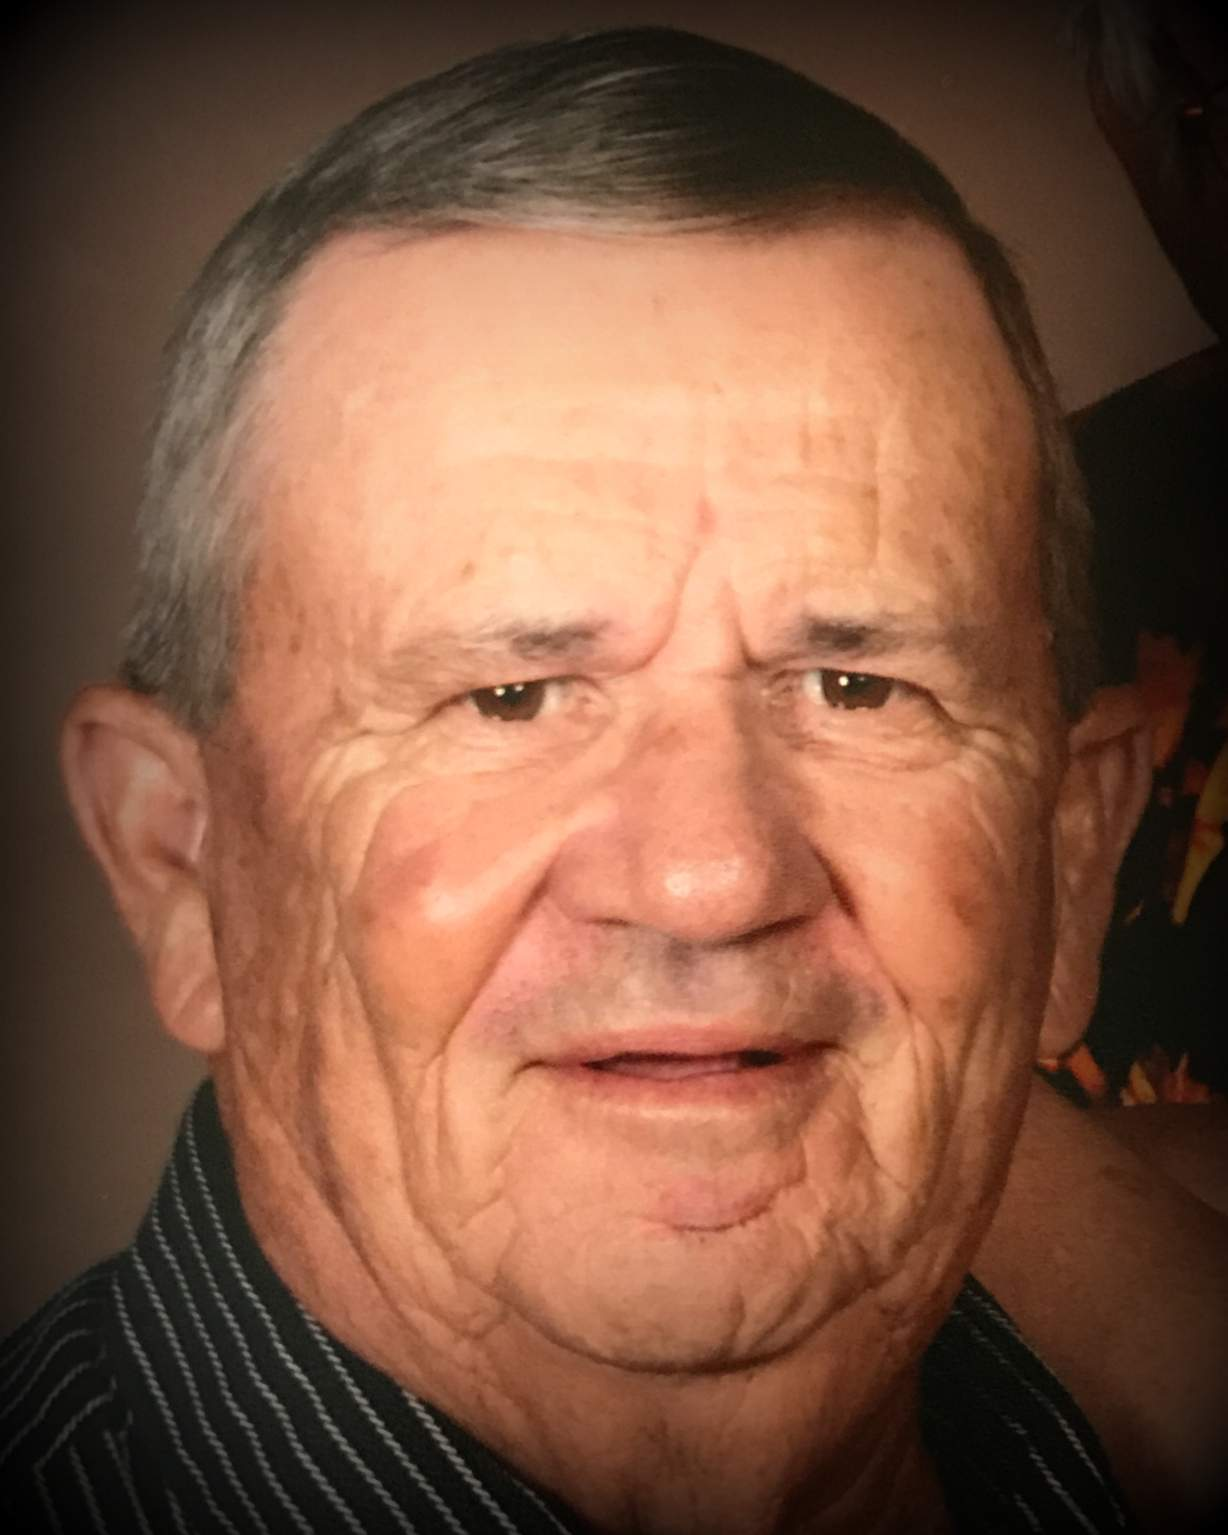 Thomas L. Moll, of Ellis Grove